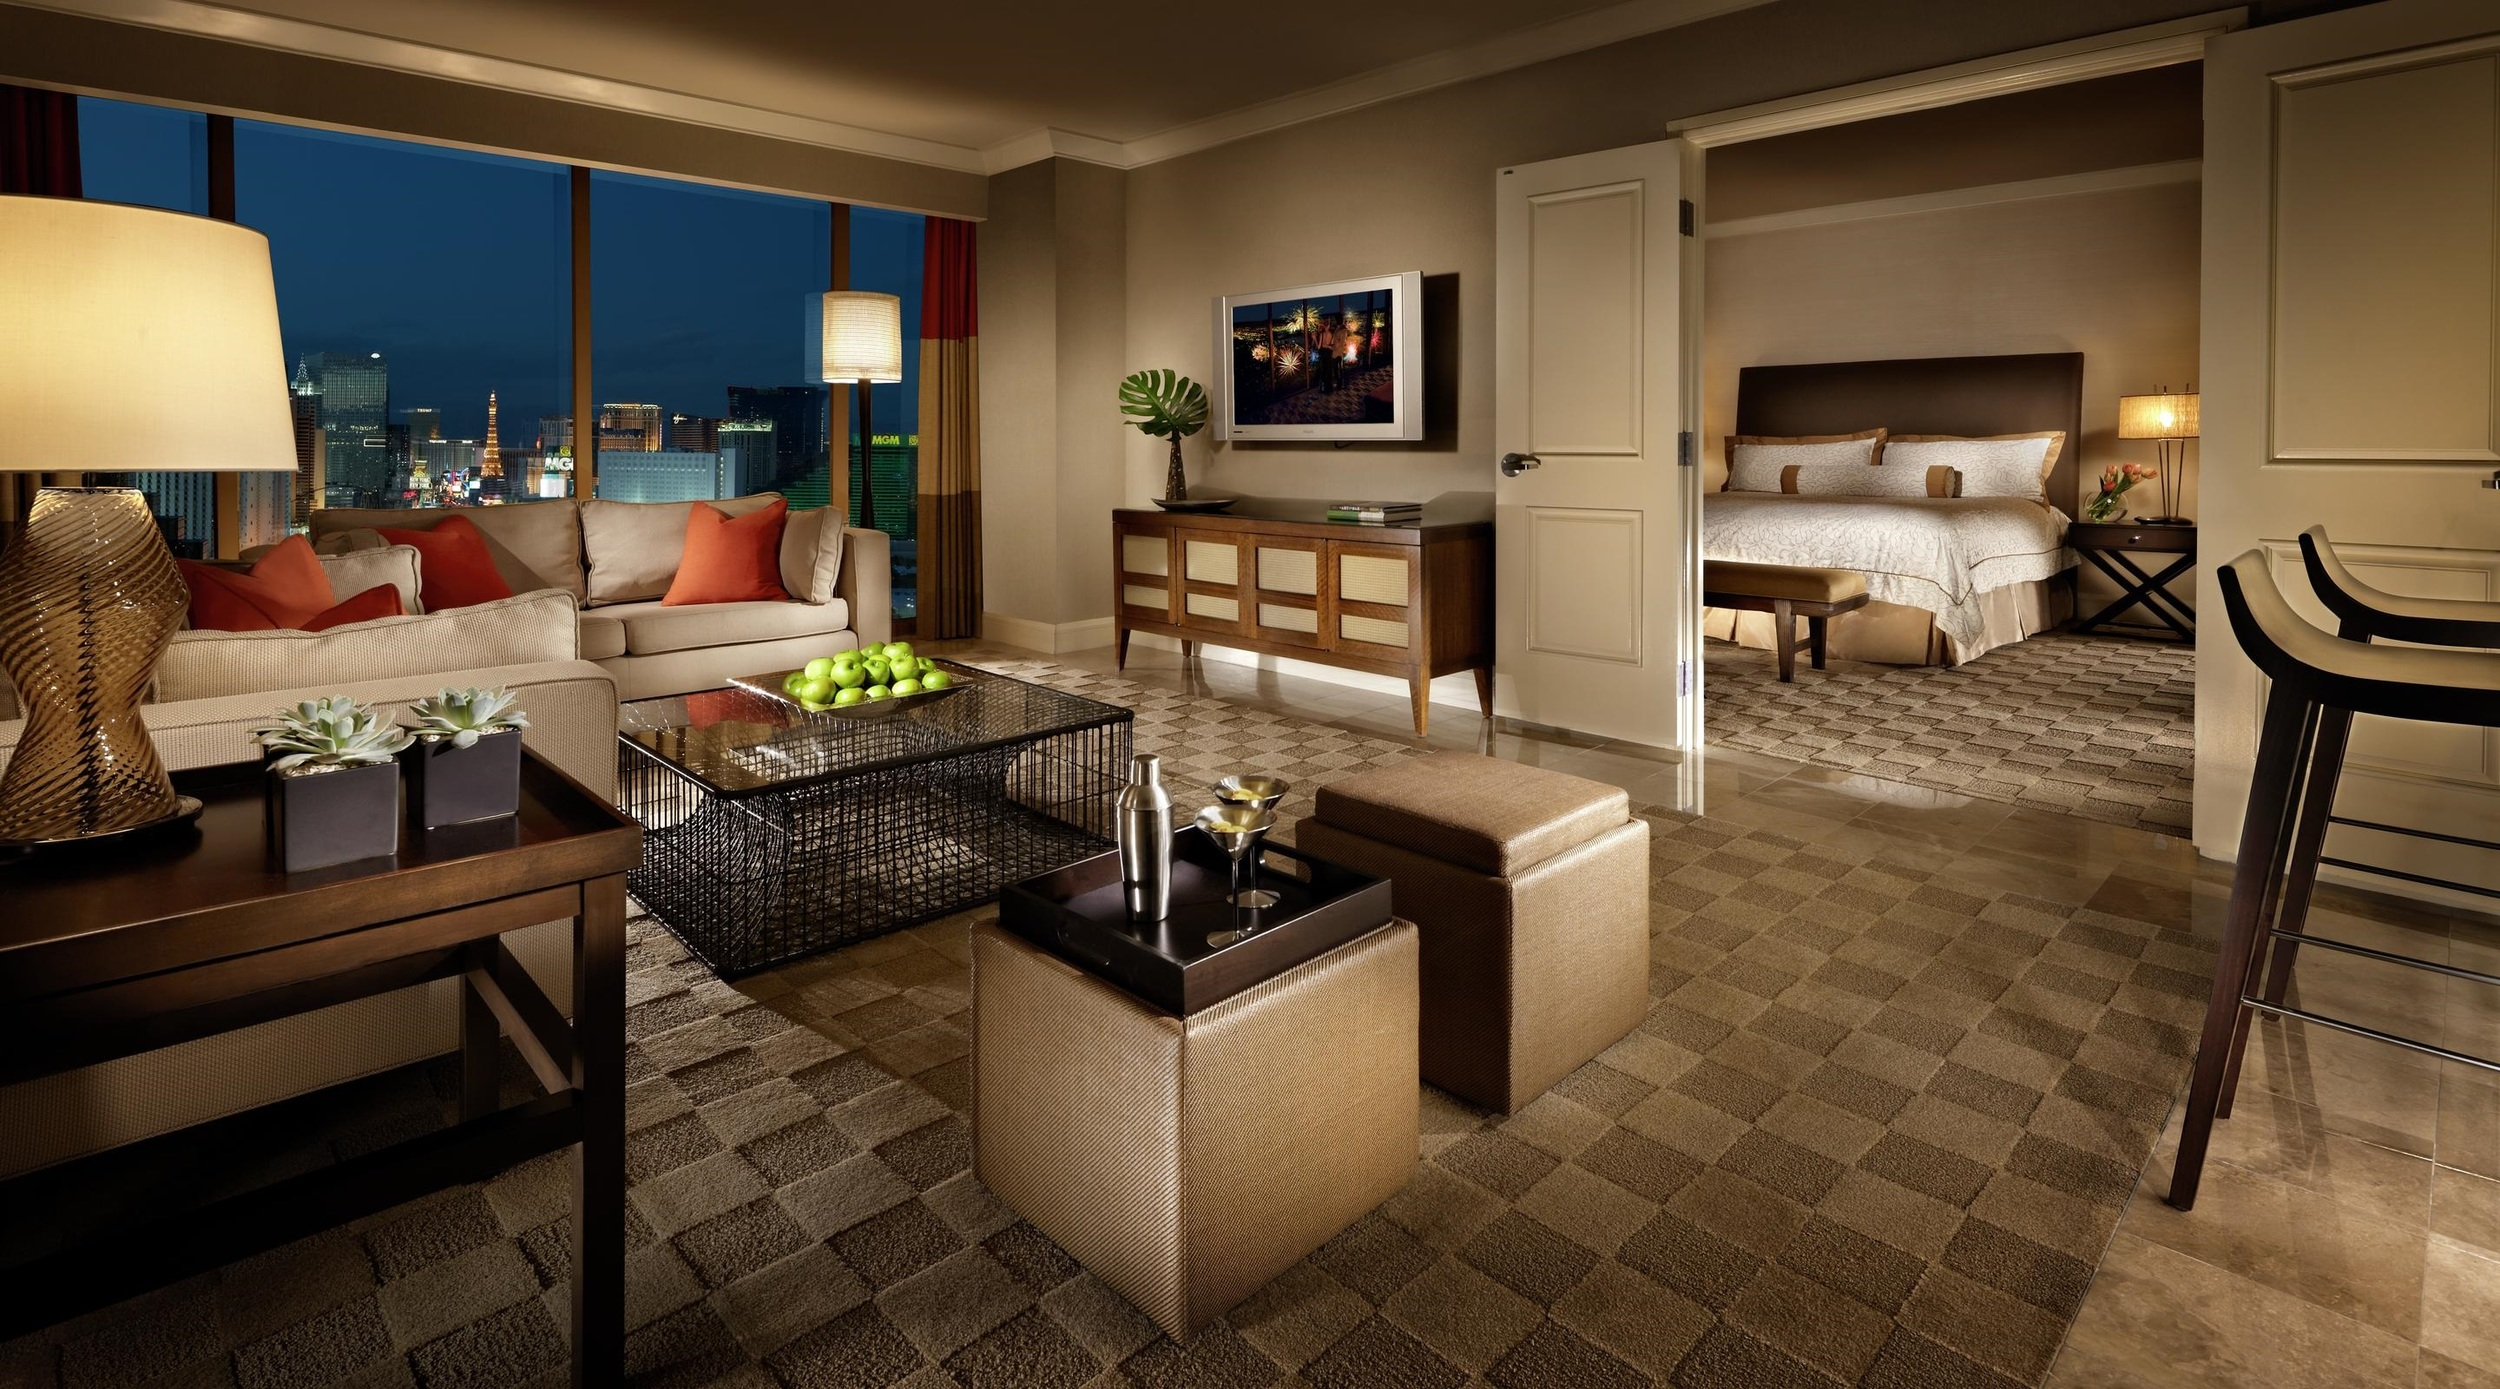 mandalay-bay-hotel-room-sky-view-suite-living-room (1).jpg